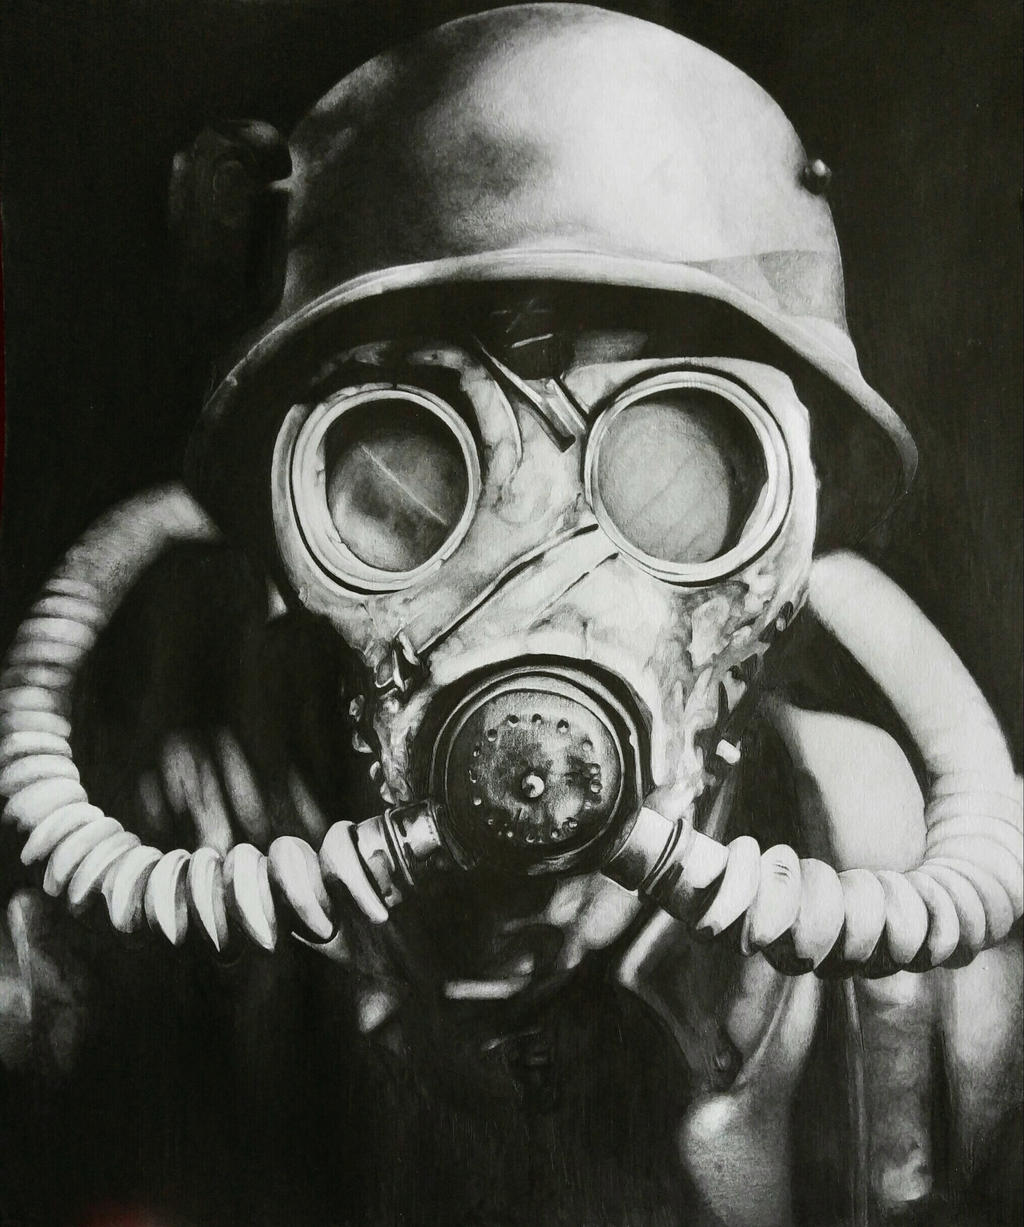 Gas Mask in Pencil by Dinadel on DeviantArt